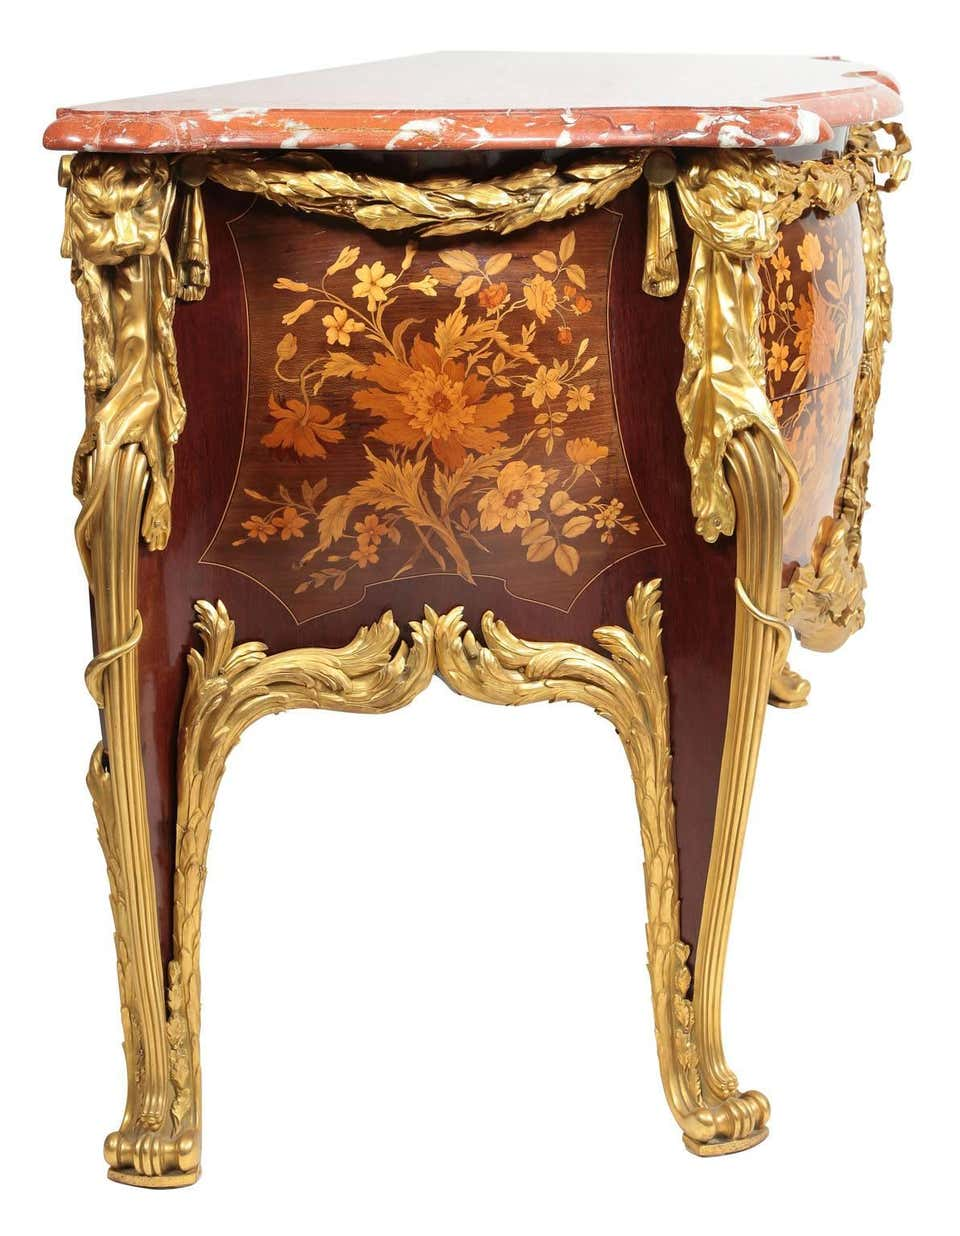 https://www.1stdibs.com/furniture/storage-case-pieces/commodes-chests-of-drawers/francois-linke-leon-message-louis-xv-style-ormolu-mounted-marquetry-commode/id-f_3952173/